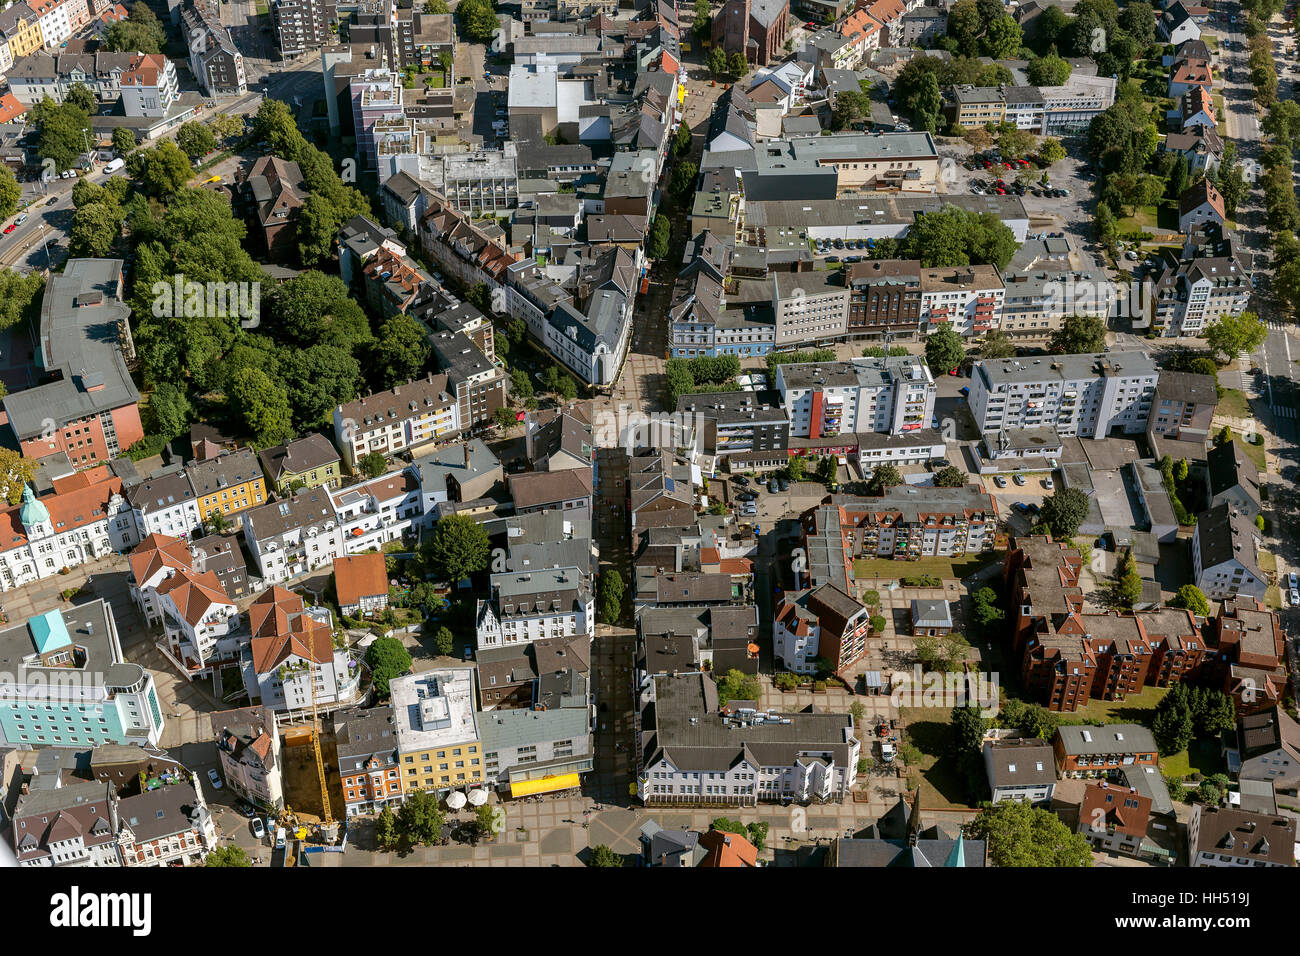 Fussgängerzone East Road, Bochum, Wattenscheid, Bochum, Ruhr area, Germany, Europe, bird-eyes view, aerial - Stock Image